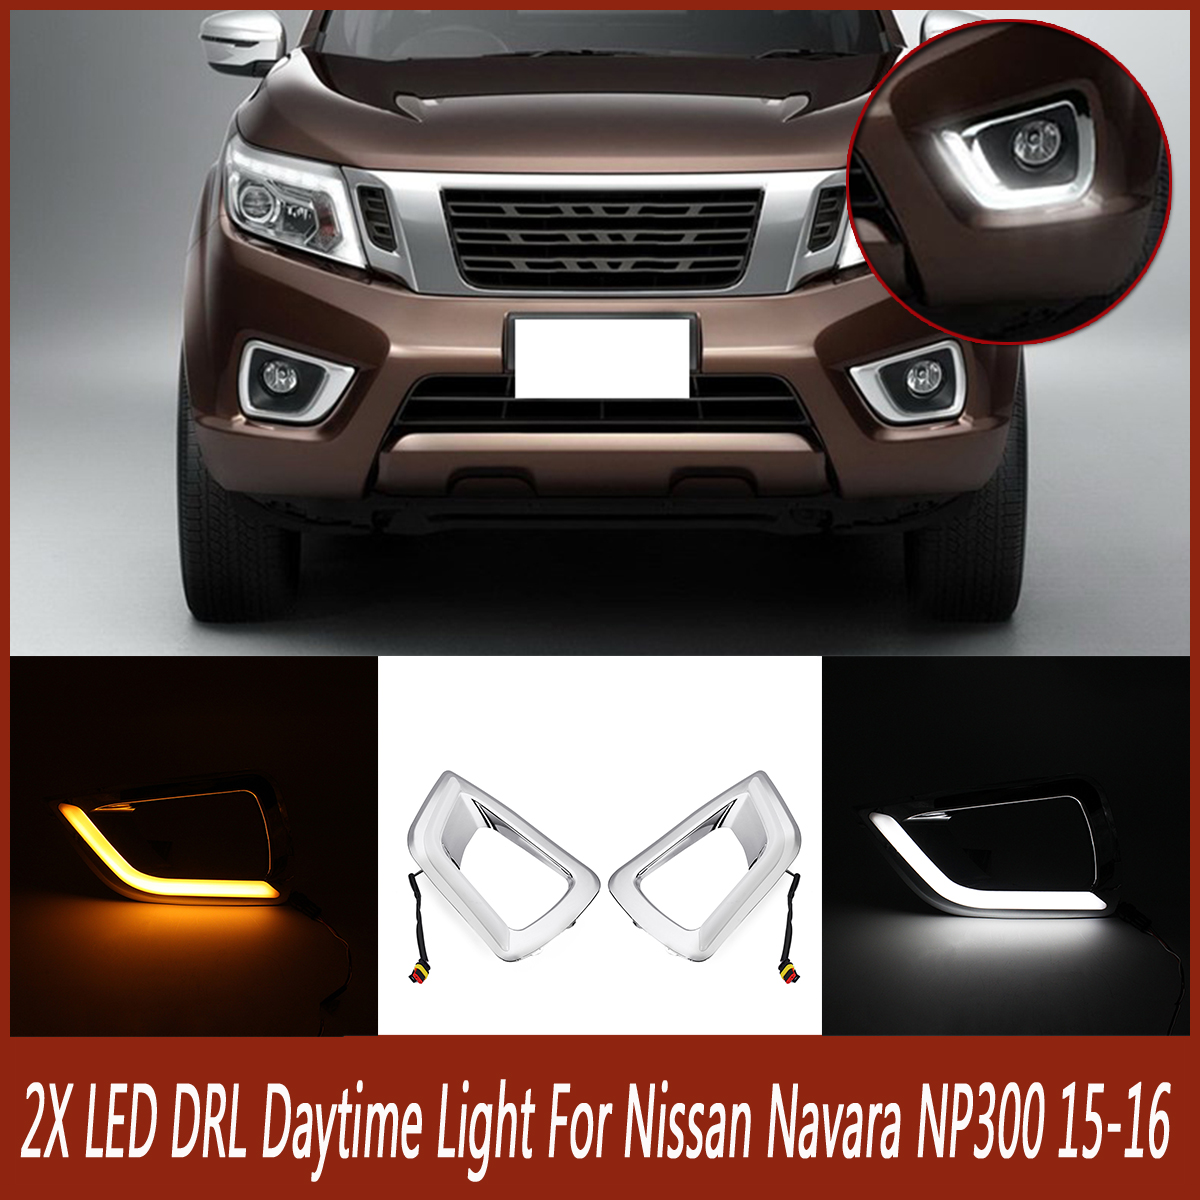 2pcs LED Switchback DRL Daytime Running Lights Fog Lamps For Nissan Navara NP300 2015-16